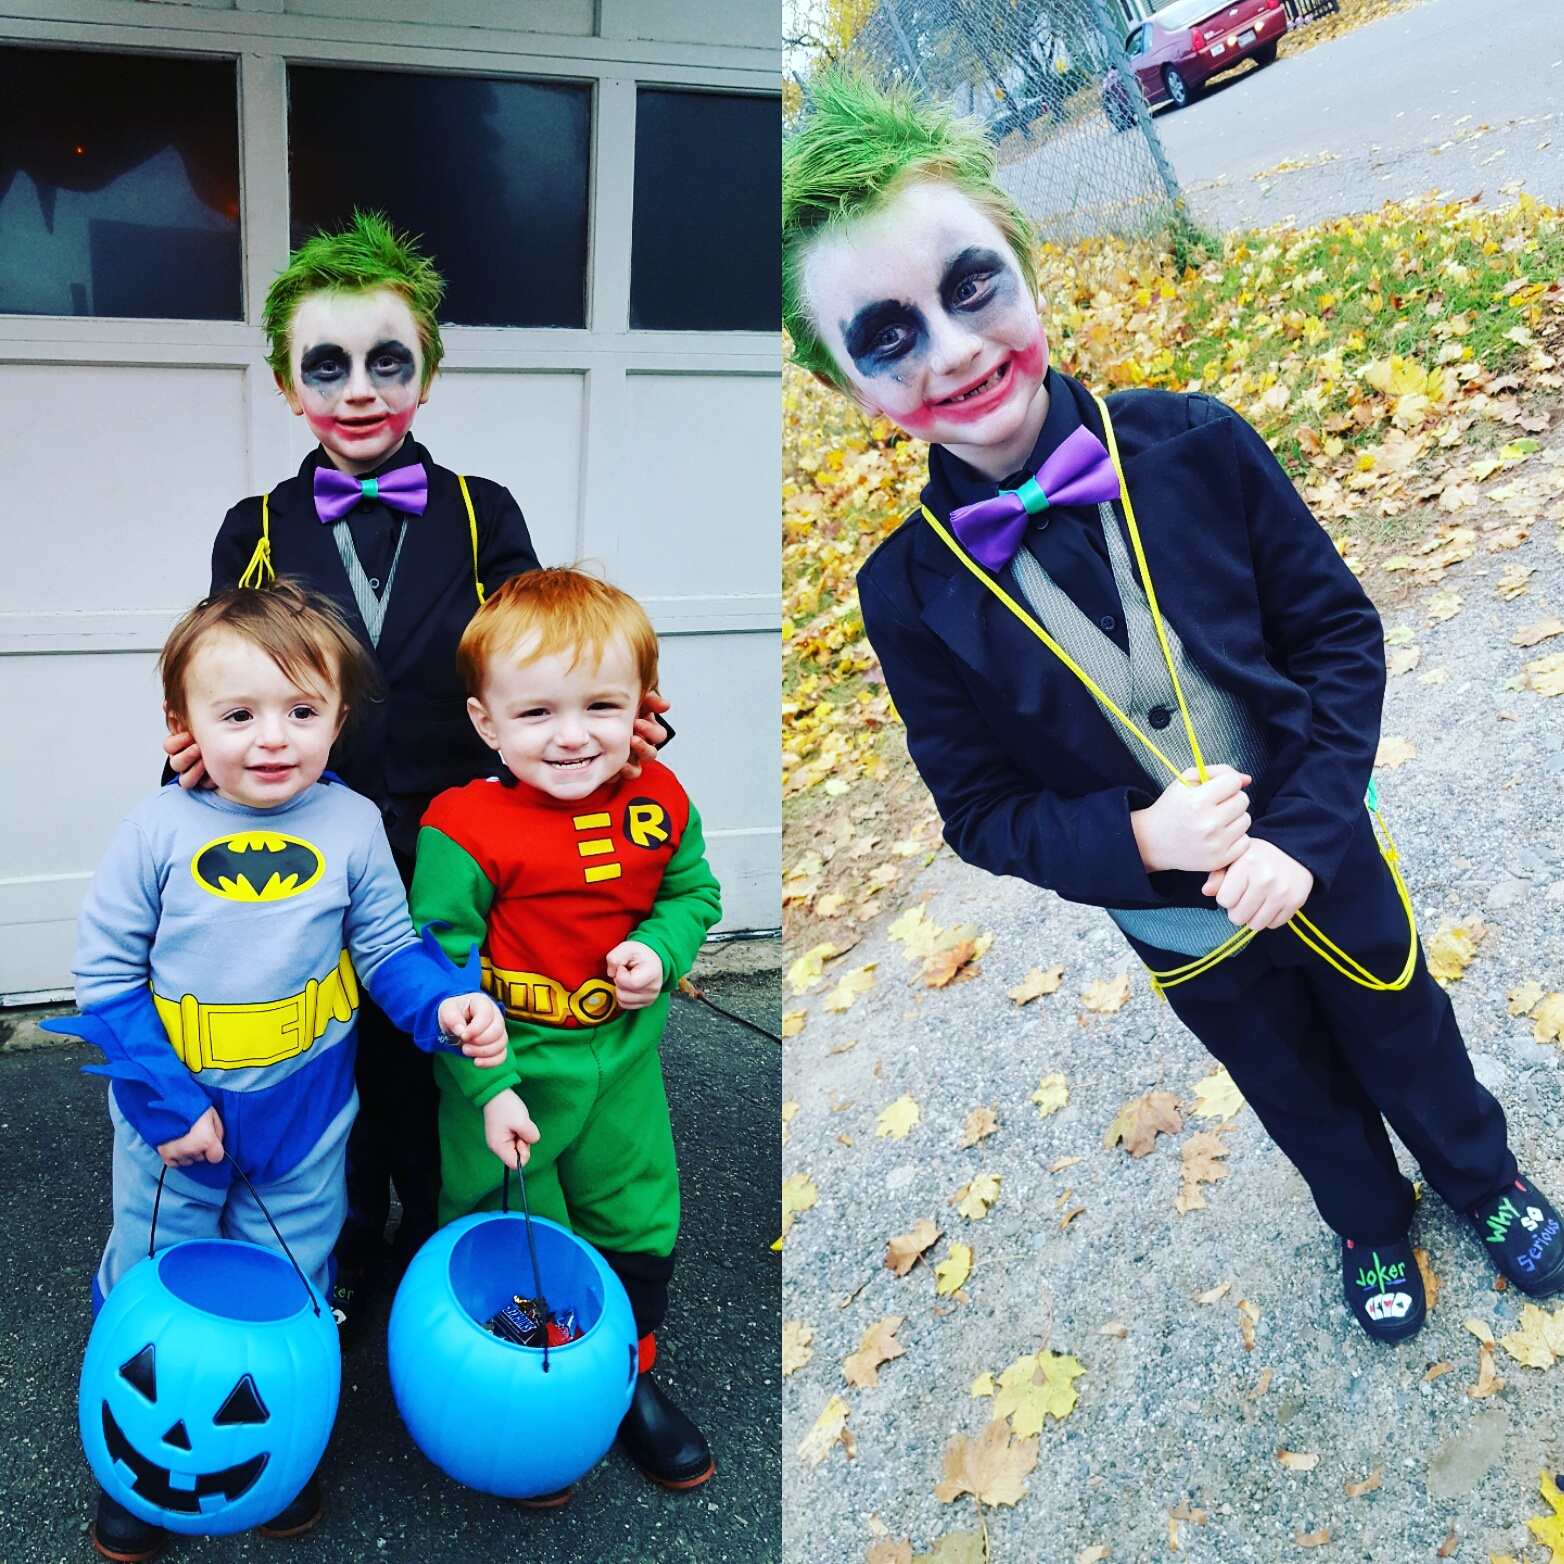 Diy Joker Costume With Twin Brothers As Batman And Robin